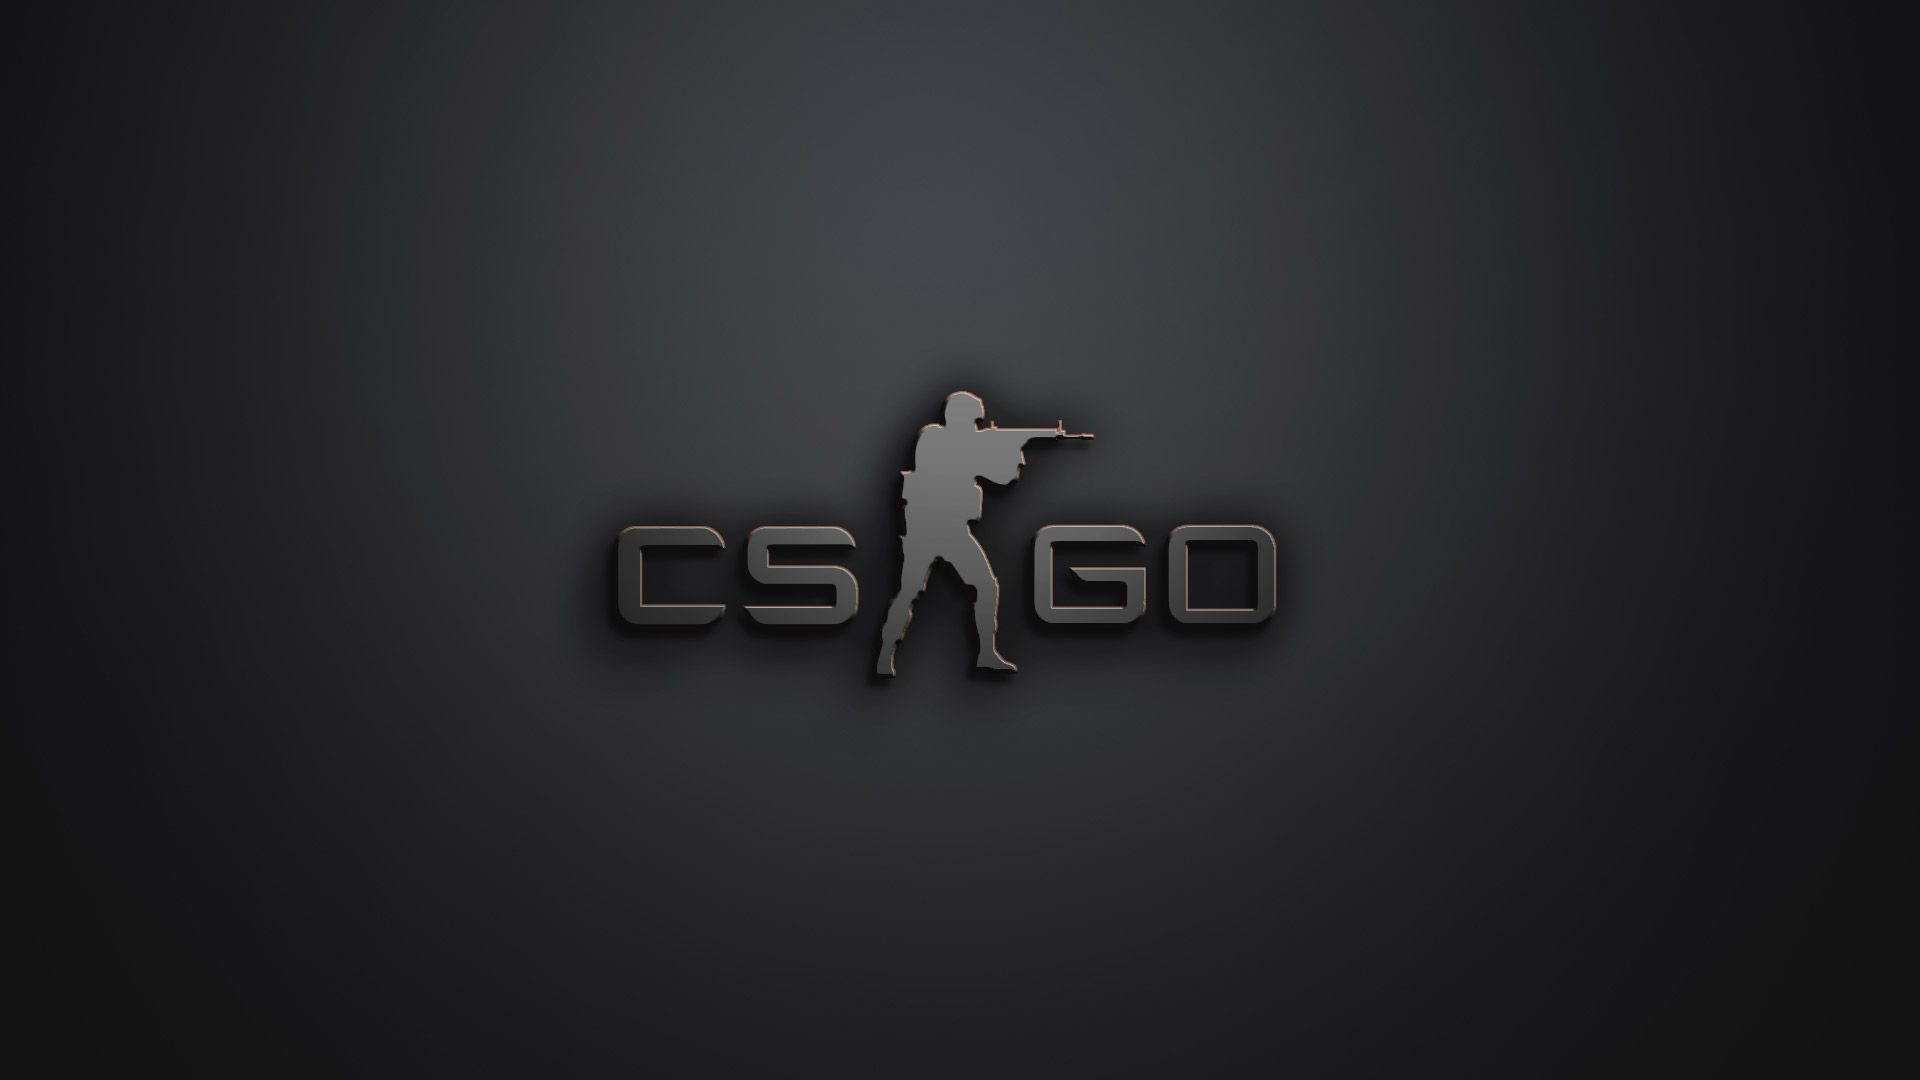 Csgo Wallpapers Top Free Csgo Backgrounds Wallpaperaccess